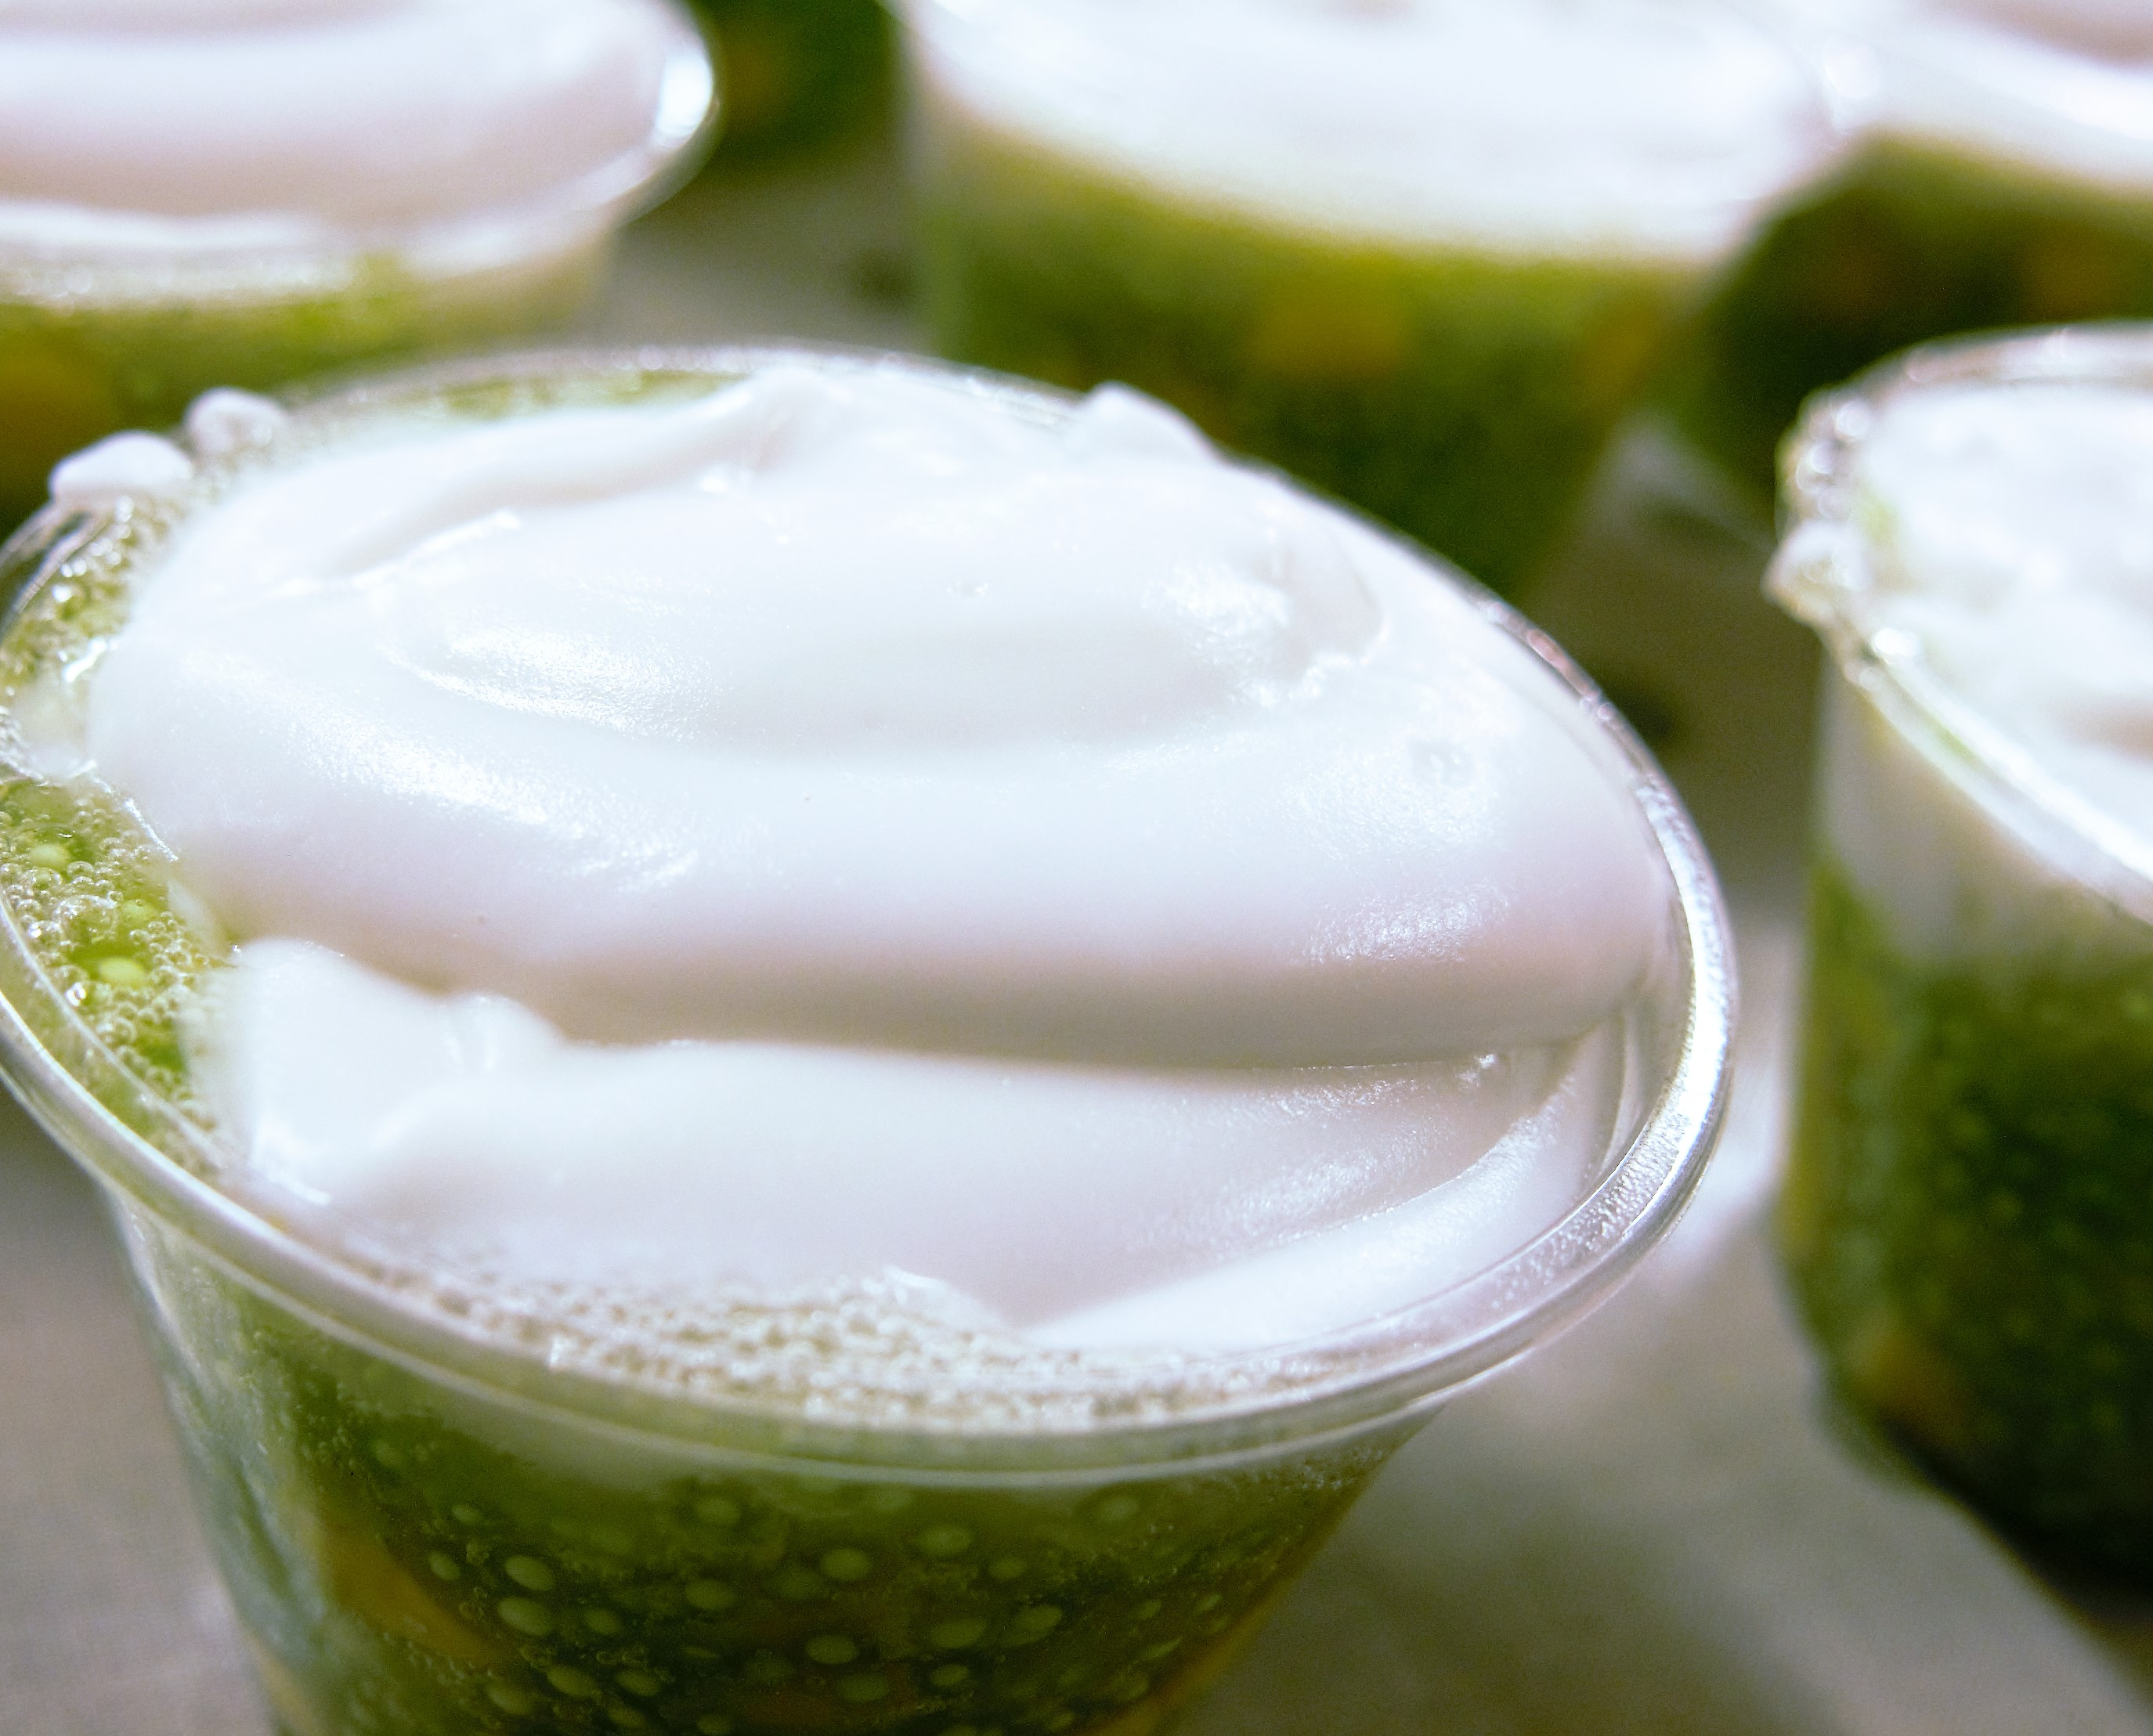 Thai Street Food With Bammut: Tapioca Pudding With Coconut Cream